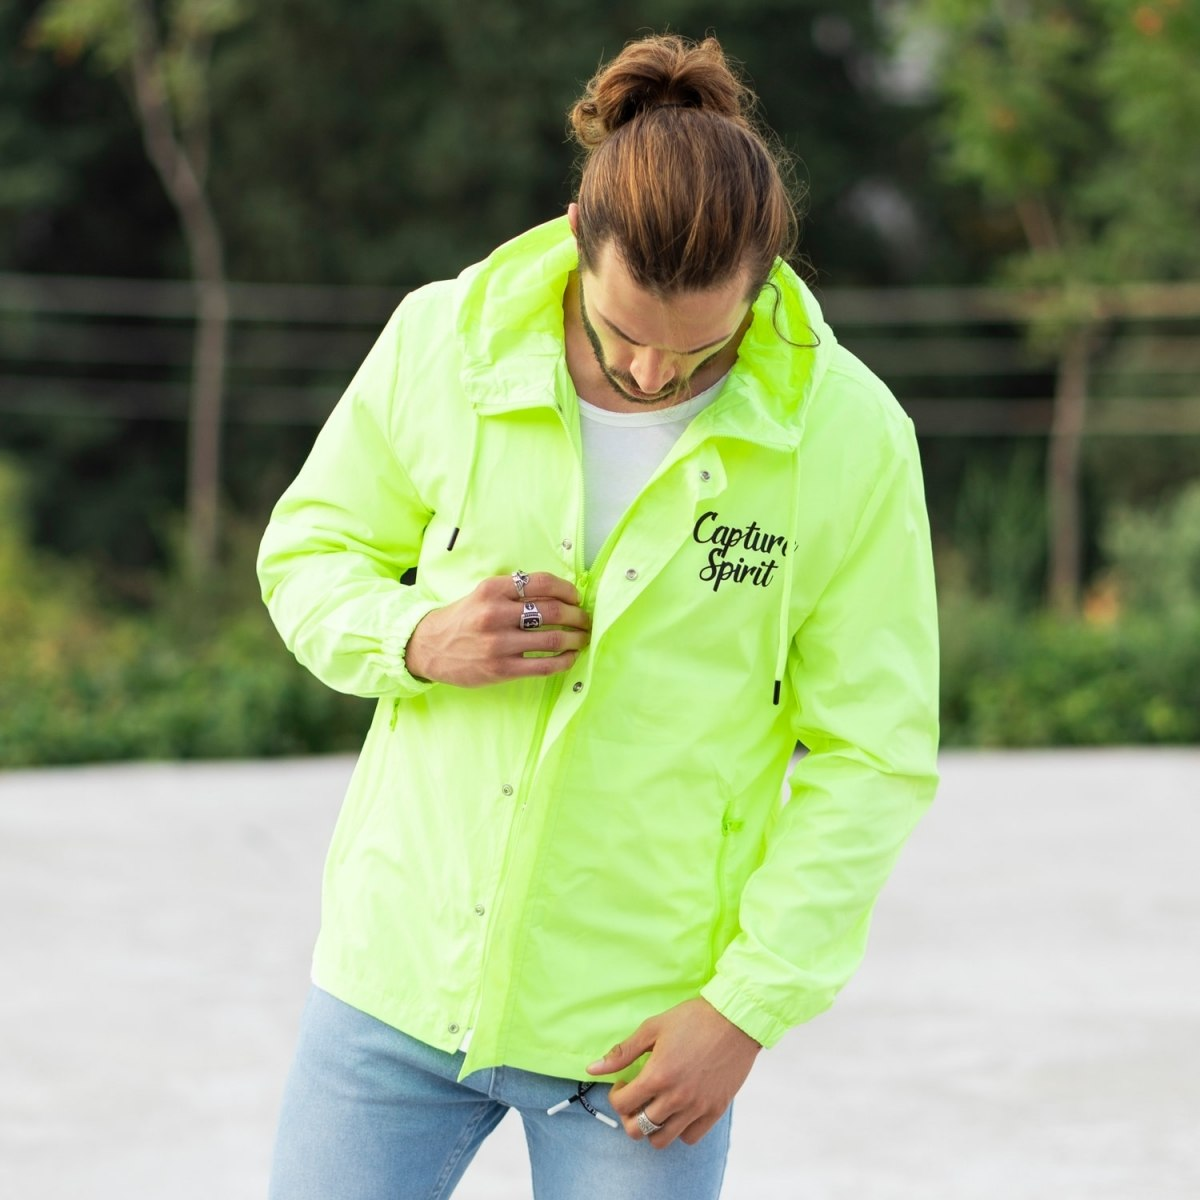 MV Autumn Collection Rainproof Hoodie in Neon-Green MV Jacket Collection - 1